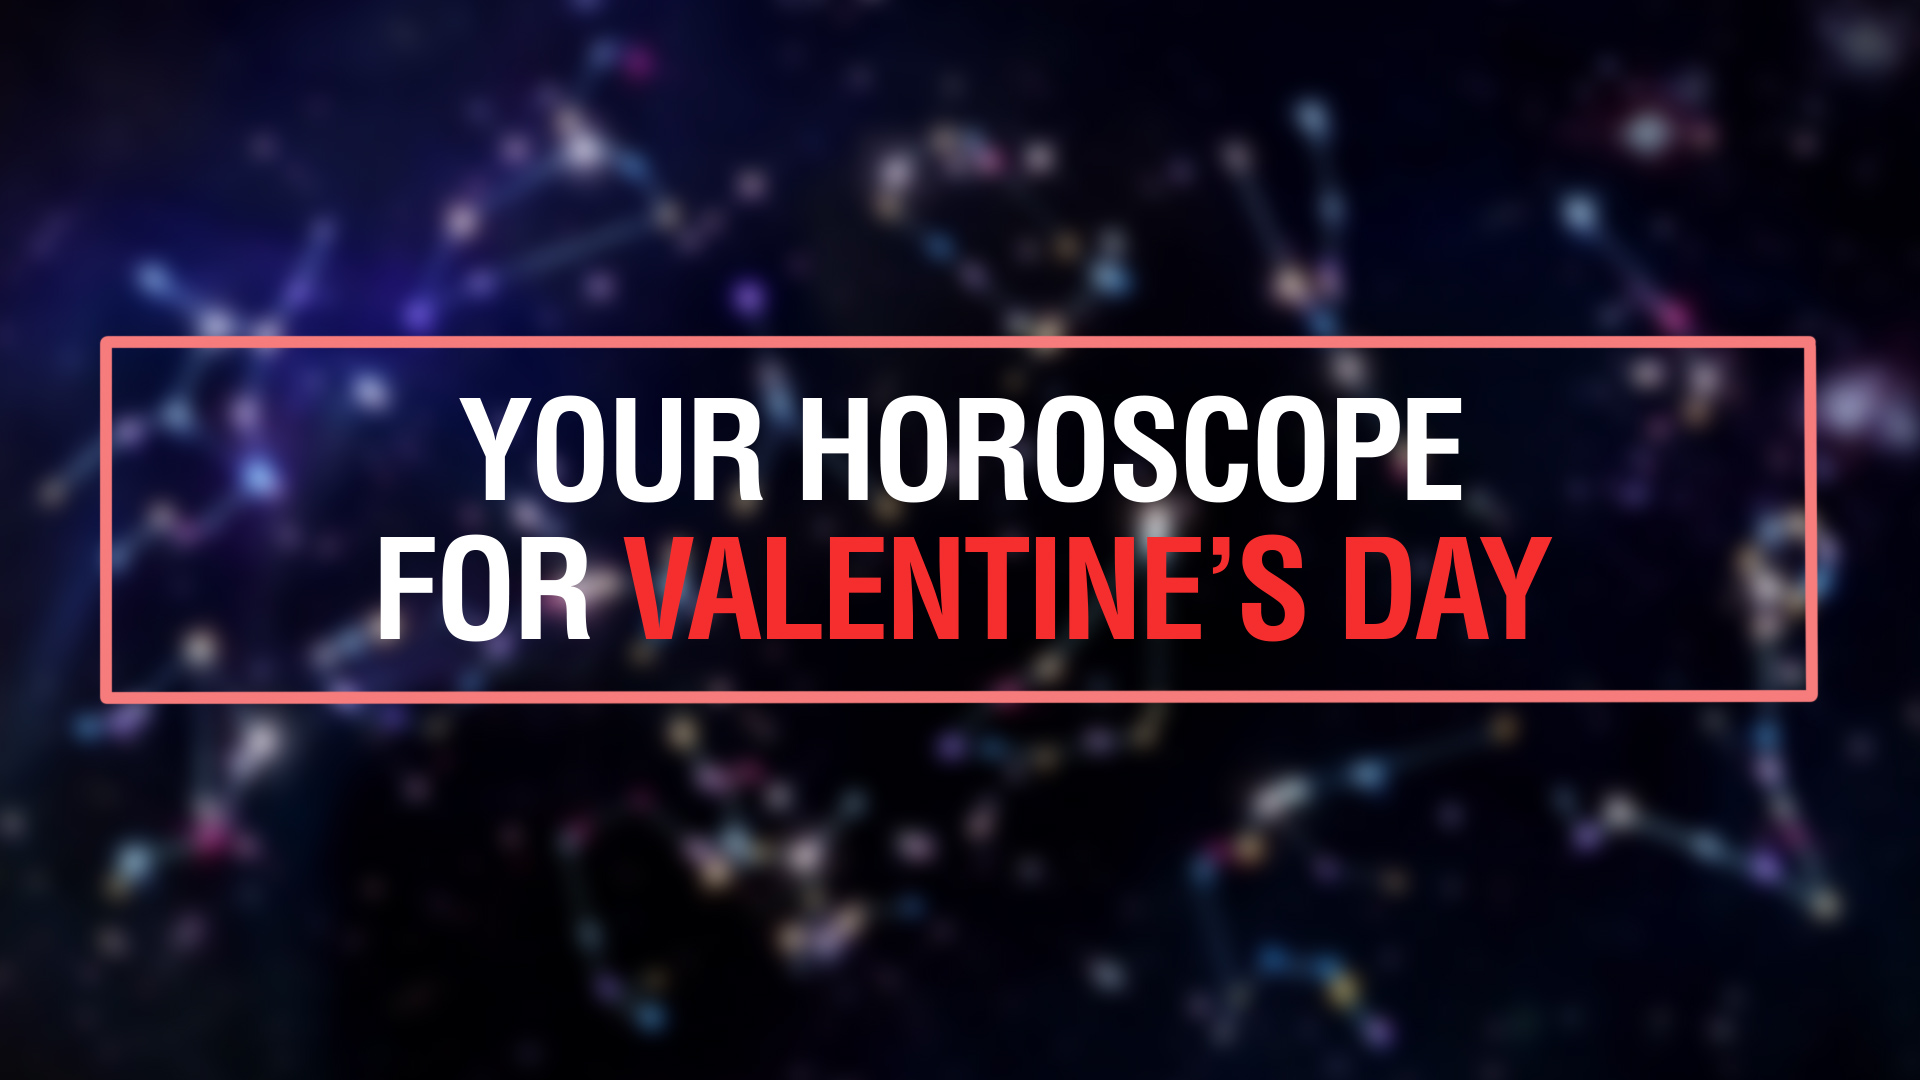 Your Horoscope for Valentine's Day